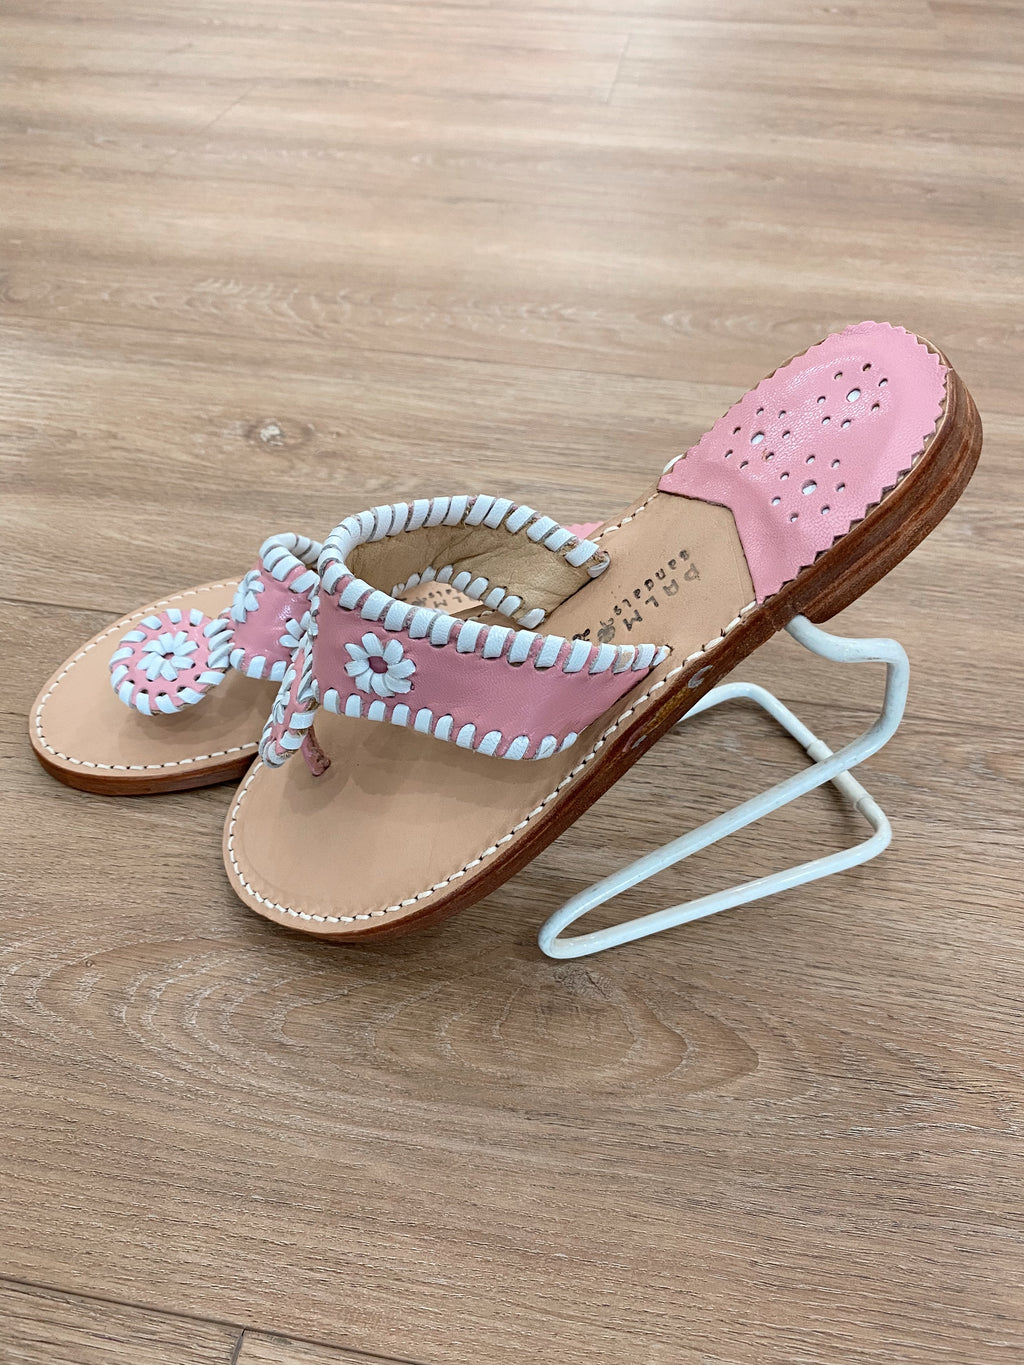 .Palm Beach Pink & White Sandals